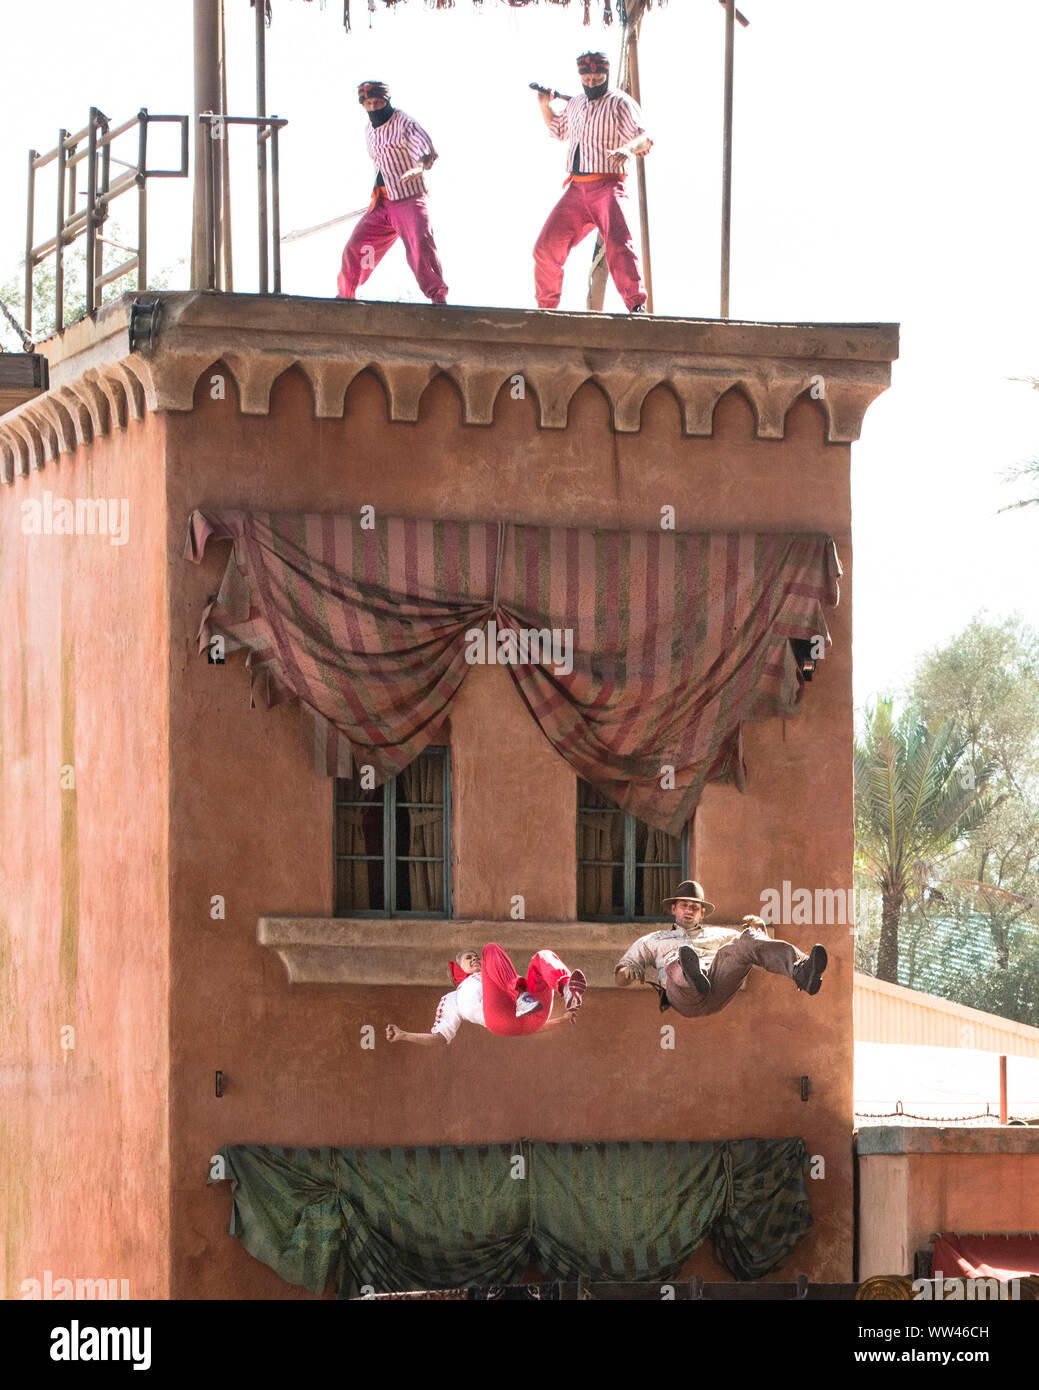 Indiana Jones Epic Stunt Spectacular! Indy and Marion are photographed in mid-fall in leap off of a Cairo rooftop. Stock Photo